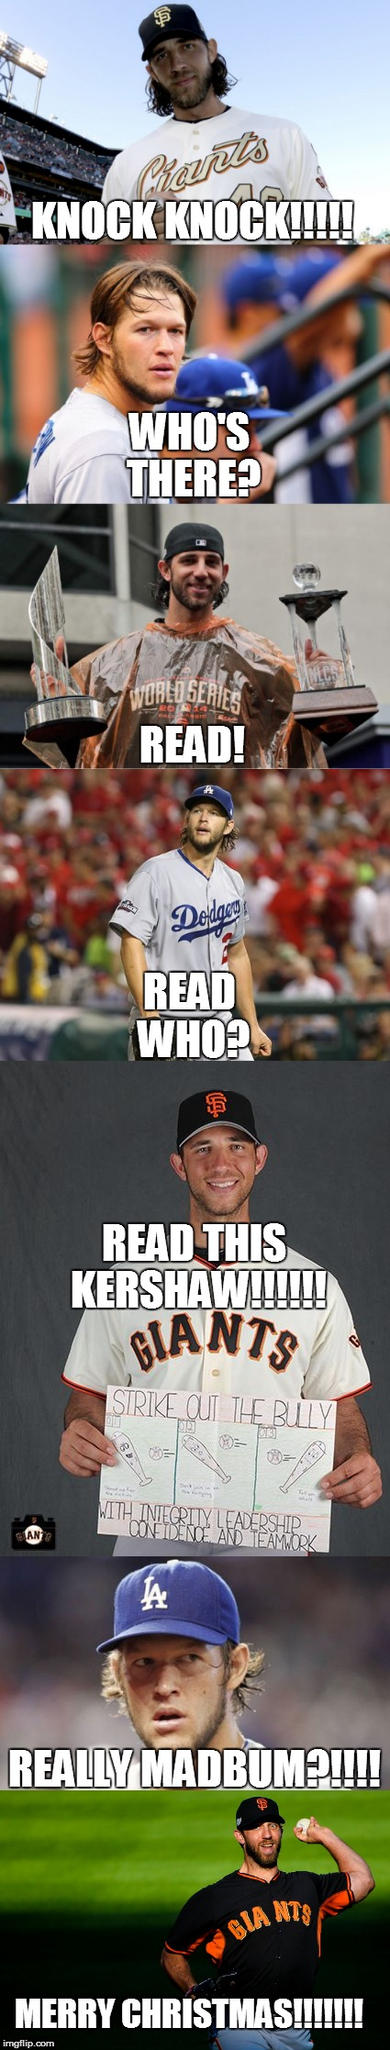 my_bumgarner_and_kershaw_christmas_meme_by_sfgiants58 darcjgn my bumgarner and kershaw christmas meme by sfgiants58 on deviantart